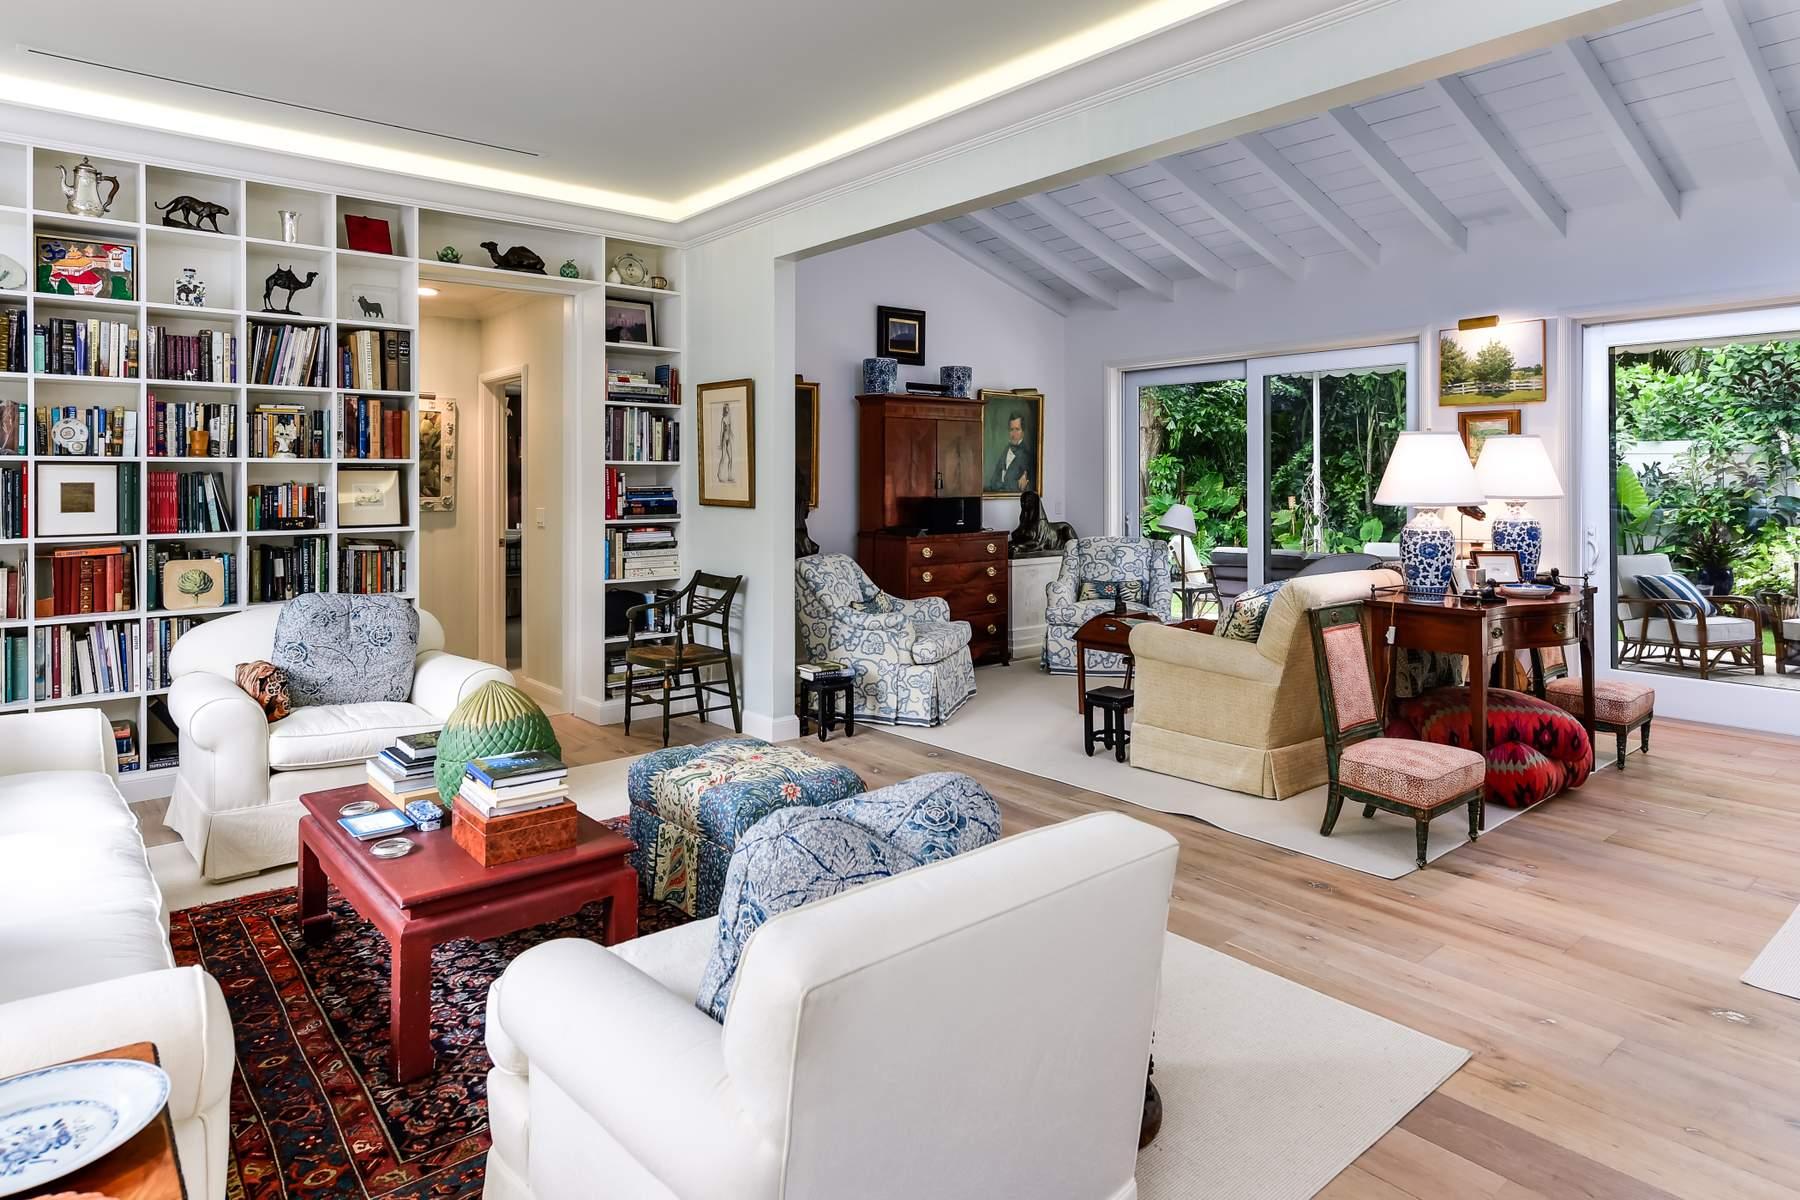 Single Family Home for Sale at Immaculate Bermuda Home 212 Cherry Ln, North End, Palm Beach, Florida, 33480 United States